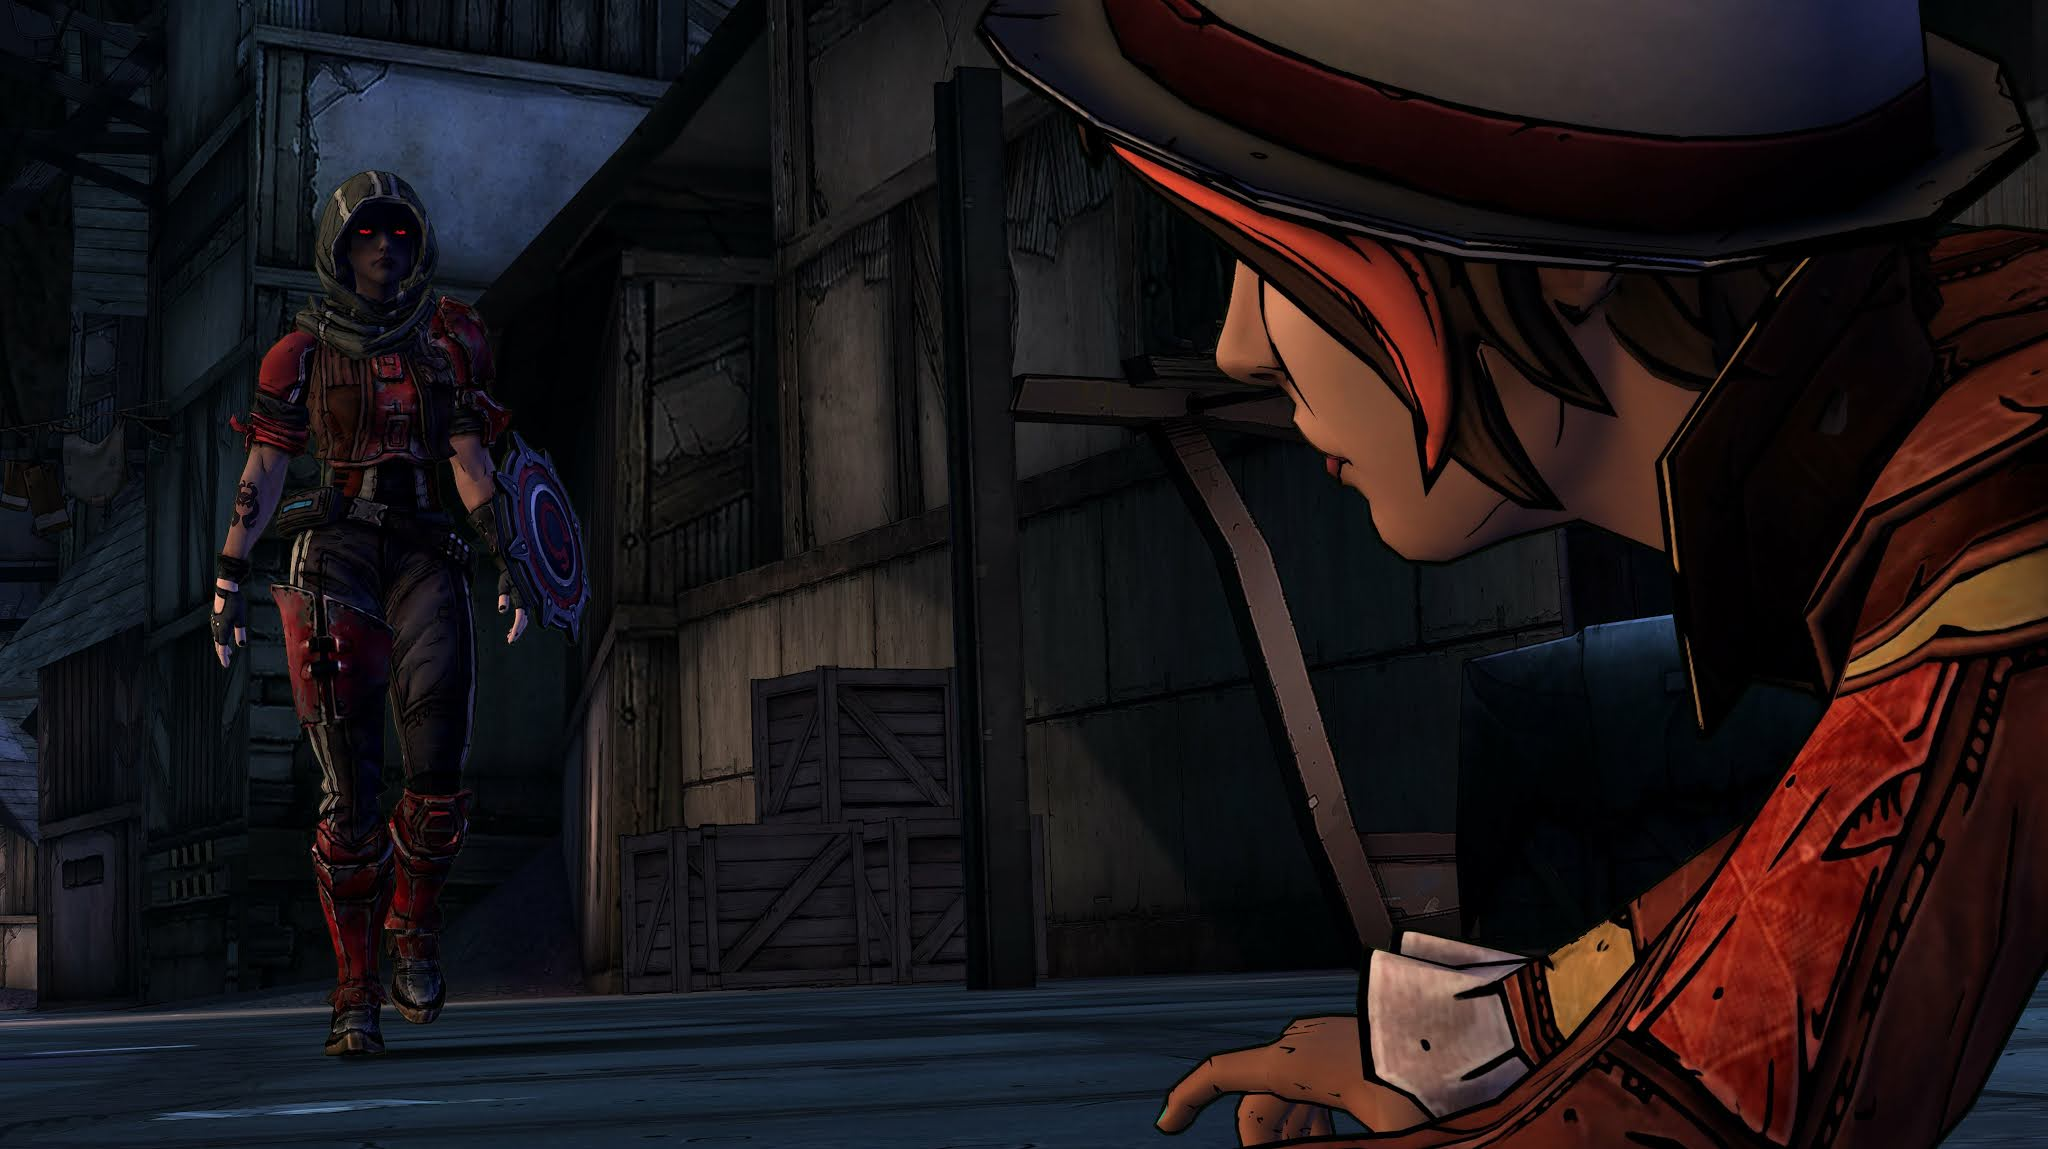 tales-from-the-borderlands-pc-screenshot-03